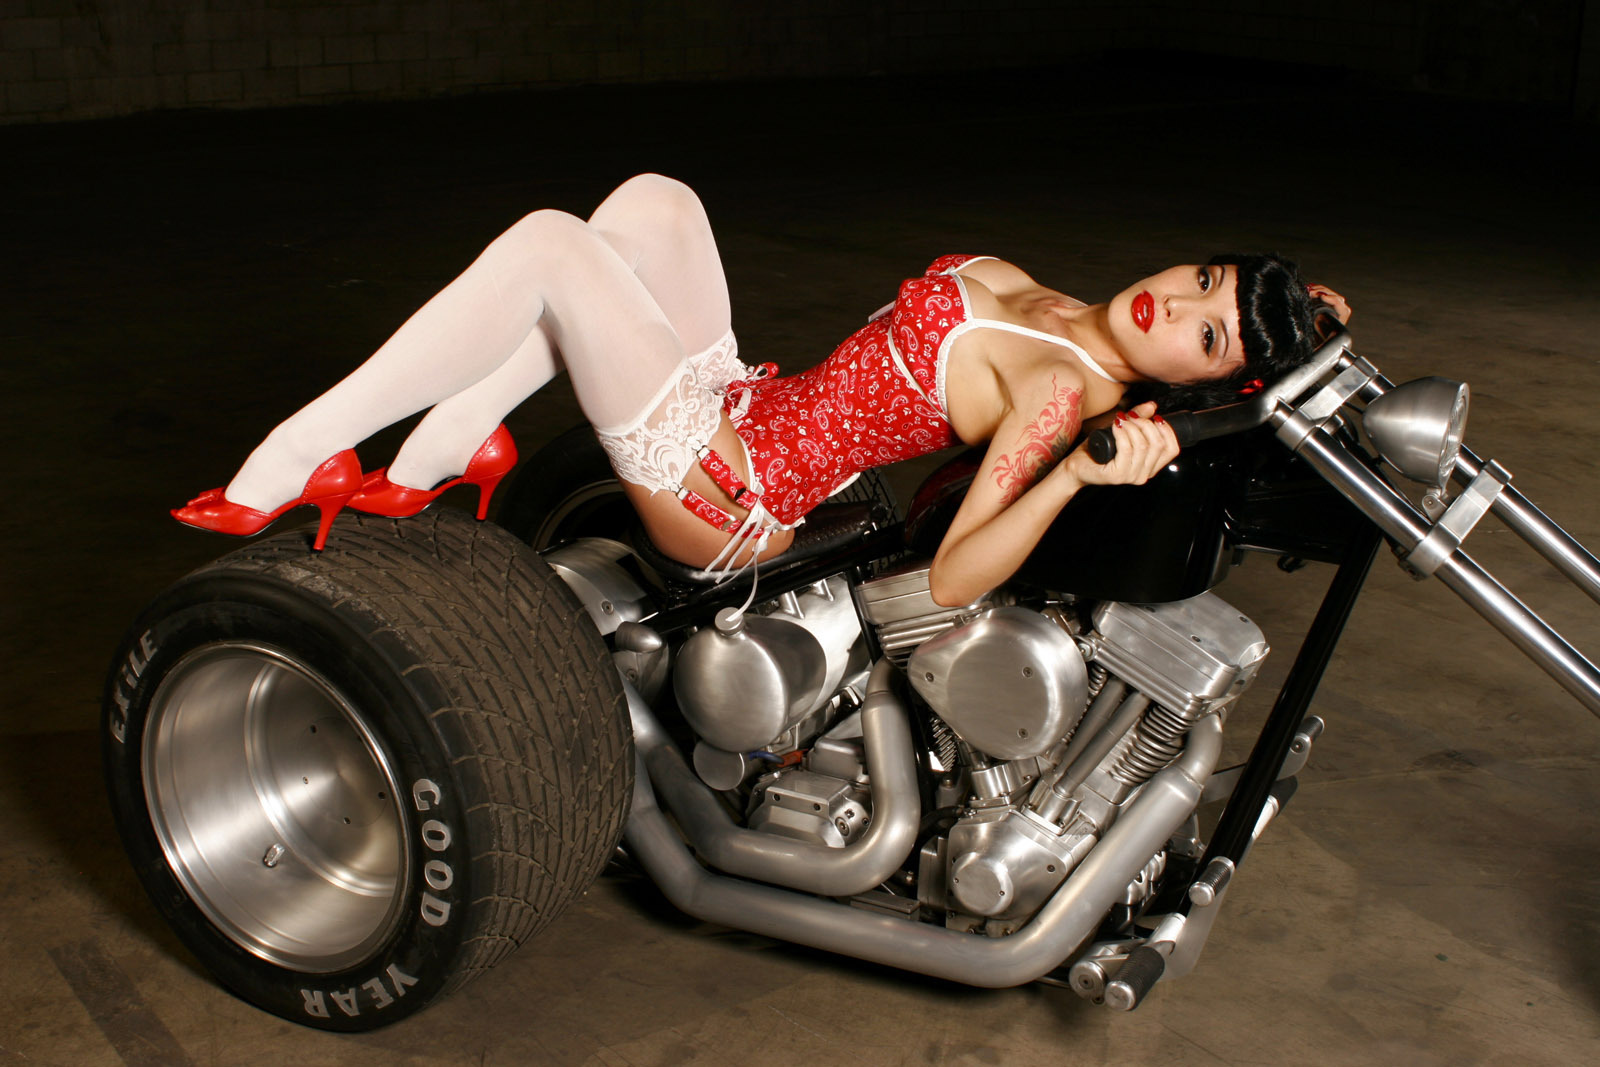 motorcycles on Nude pin up girls